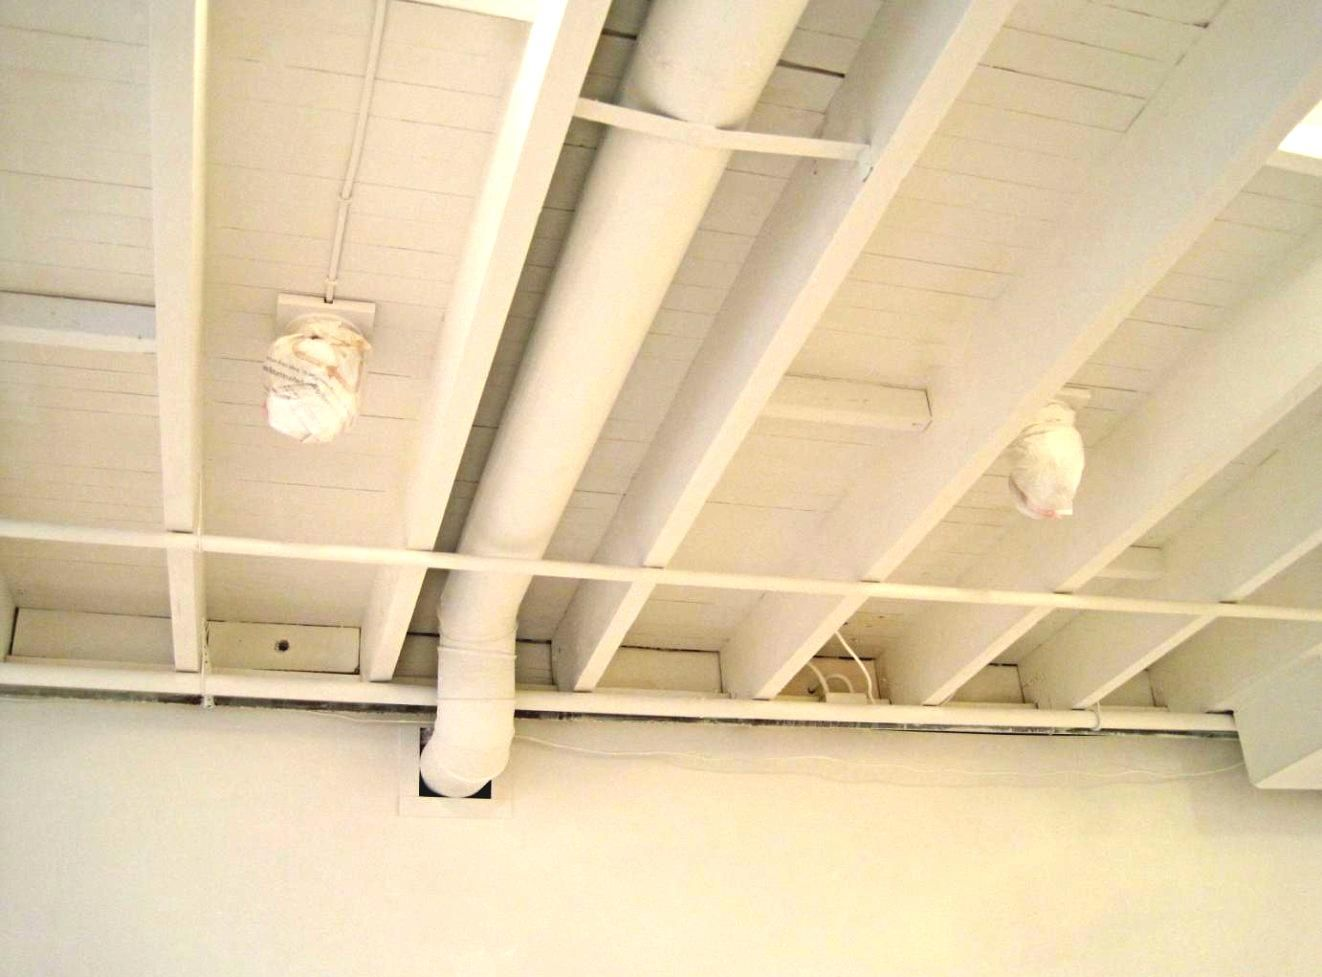 unfinished basement ceiling. Decoration-painted-white-color-unfinished-basement-wood-ceiling. Unfinished Basement Ceiling B